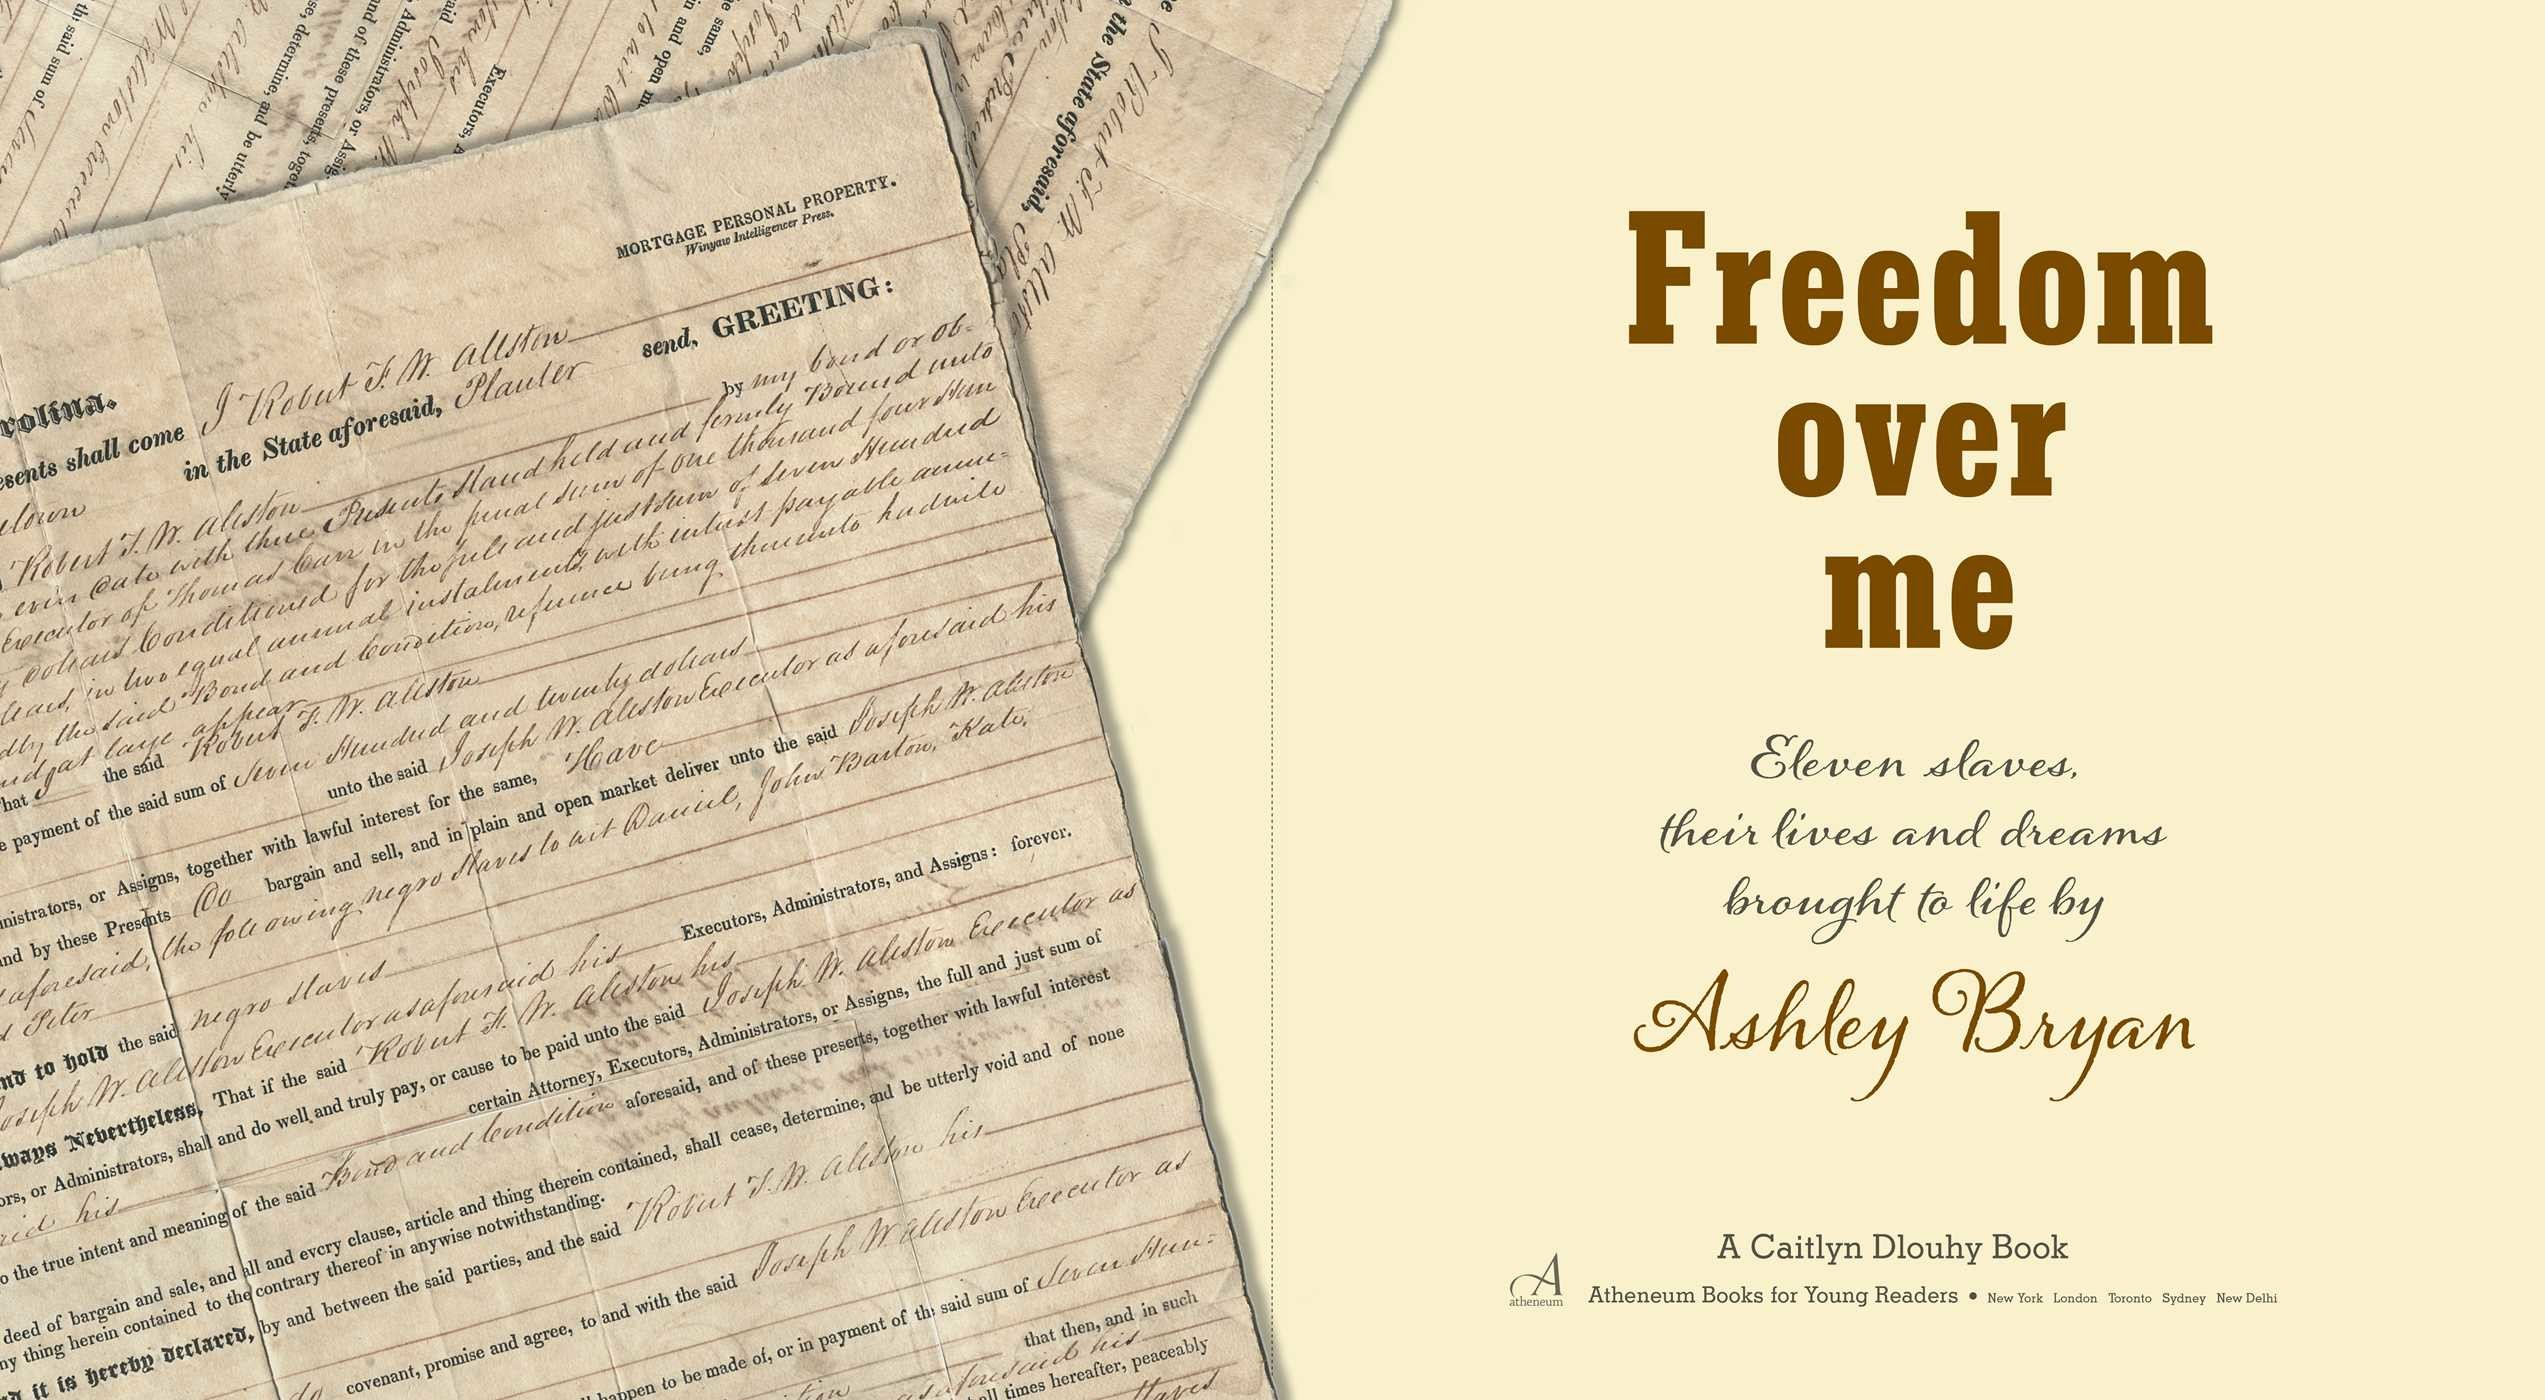 Freedom over me 9781481456906.in01